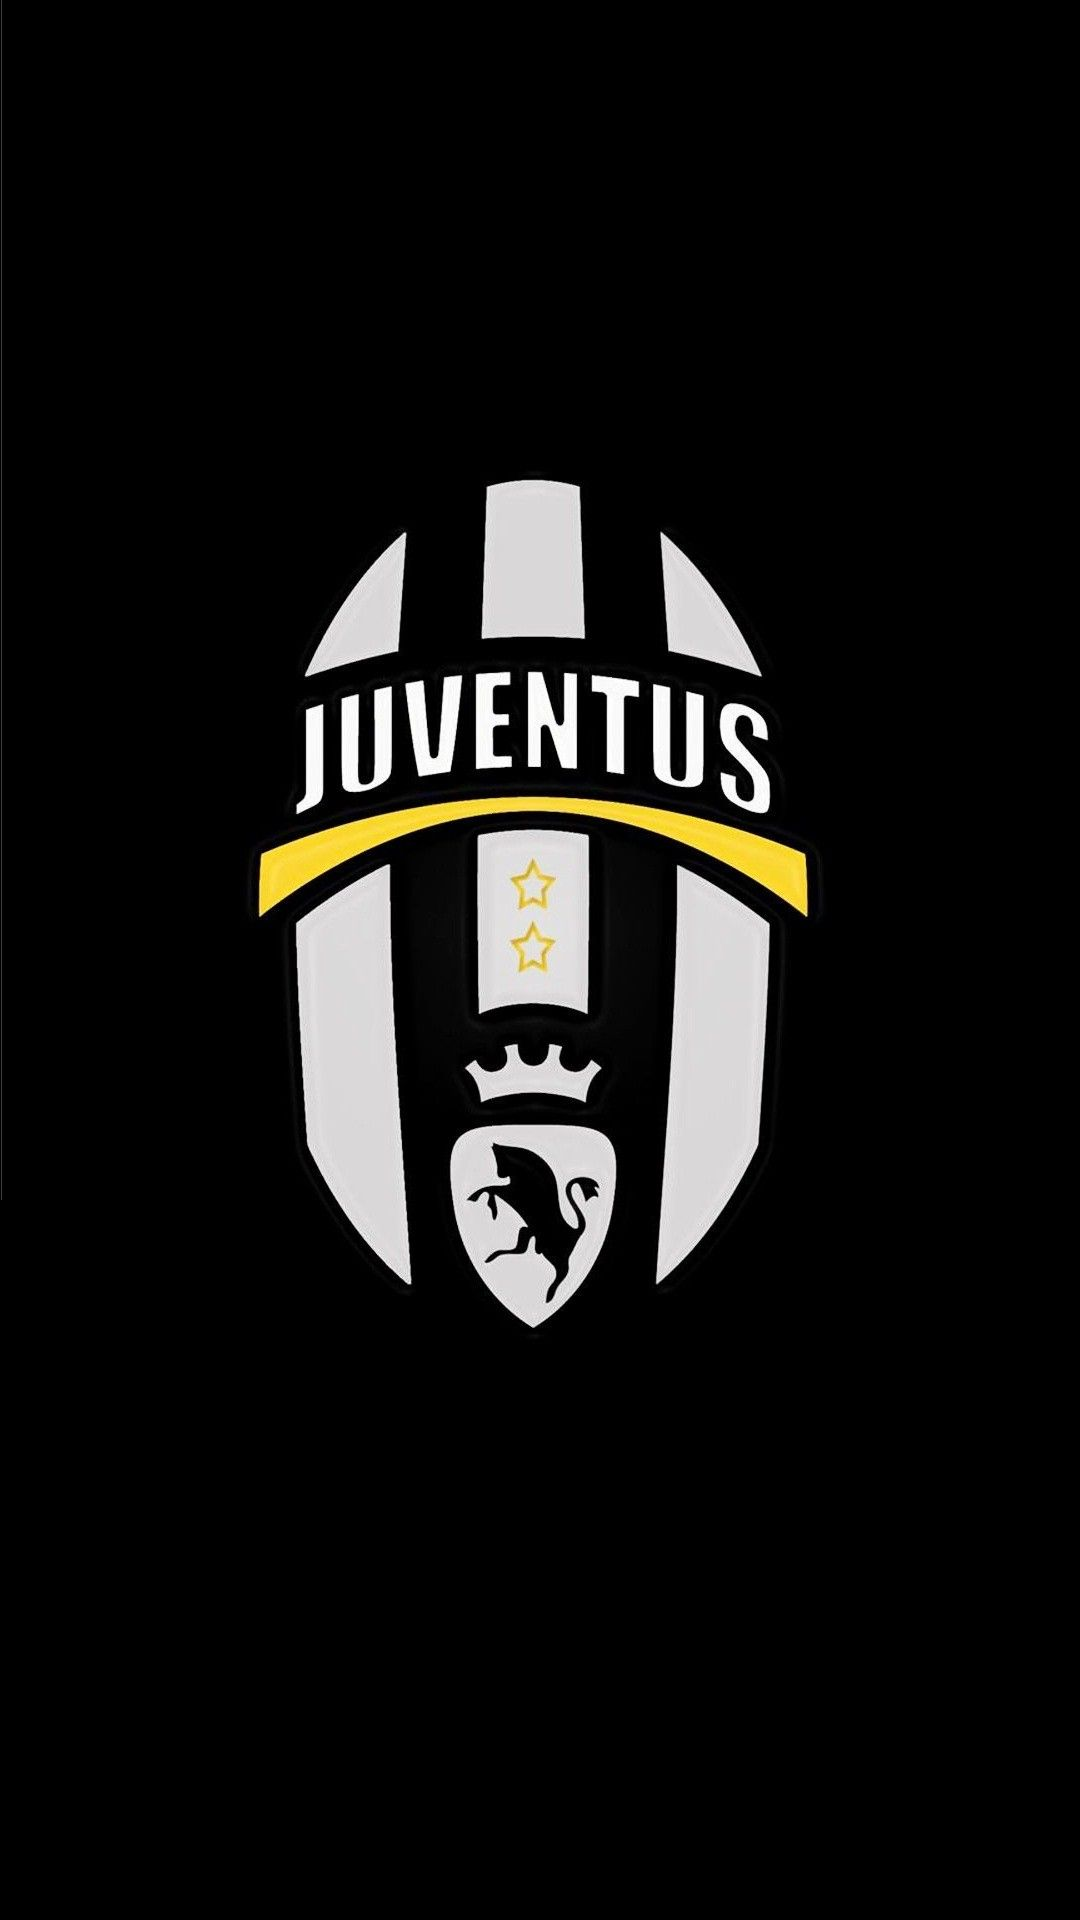 Juventus Iphone X Wallpaper Iphonewallpapers Iphone Wallpaper